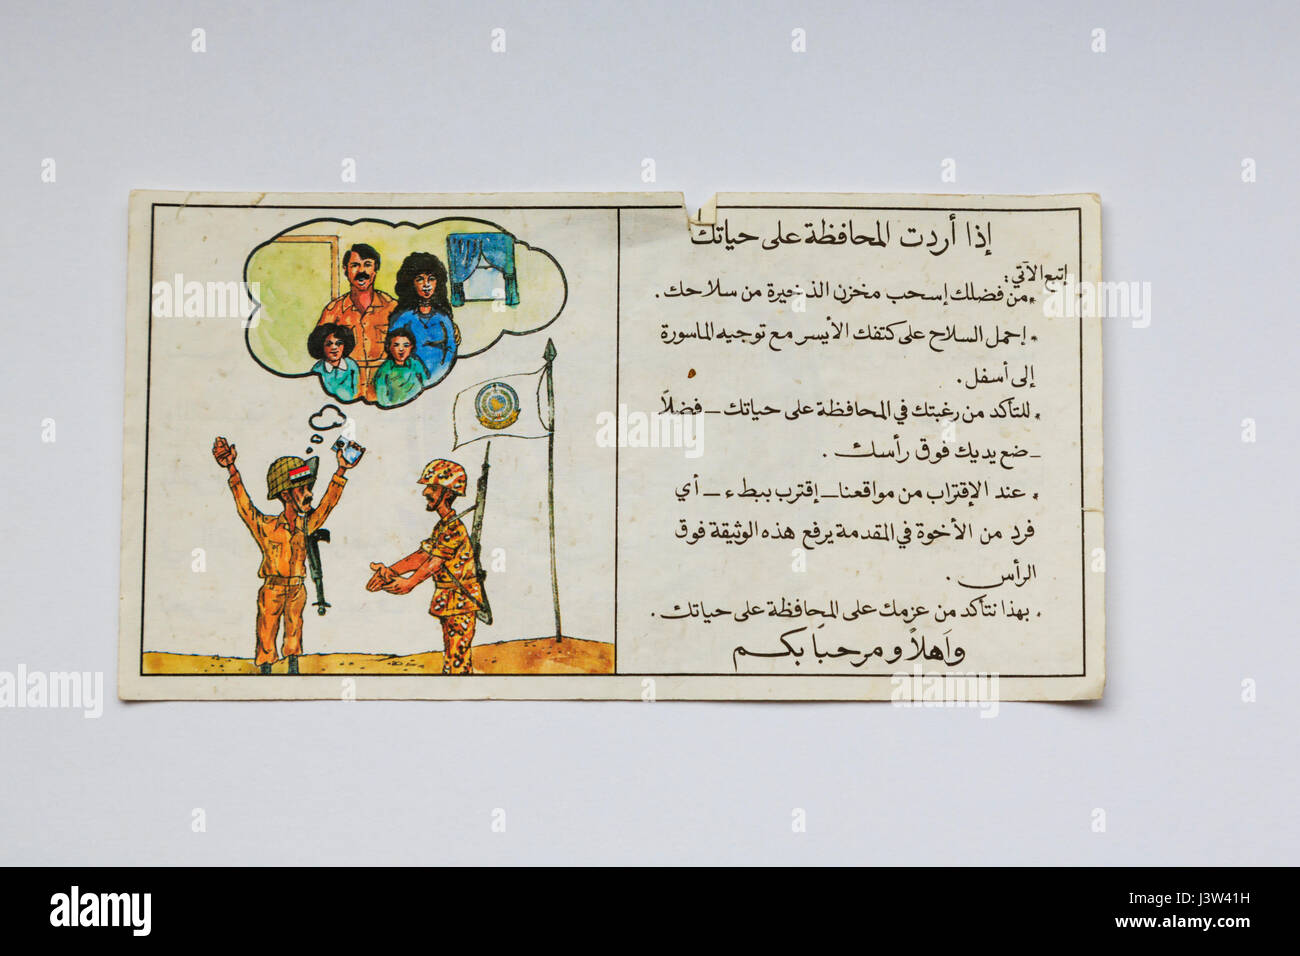 Leaflets encouraging Iraqi forces to surrender to Coallition forces during the Gulf War of 1991-1992. - Stock Image